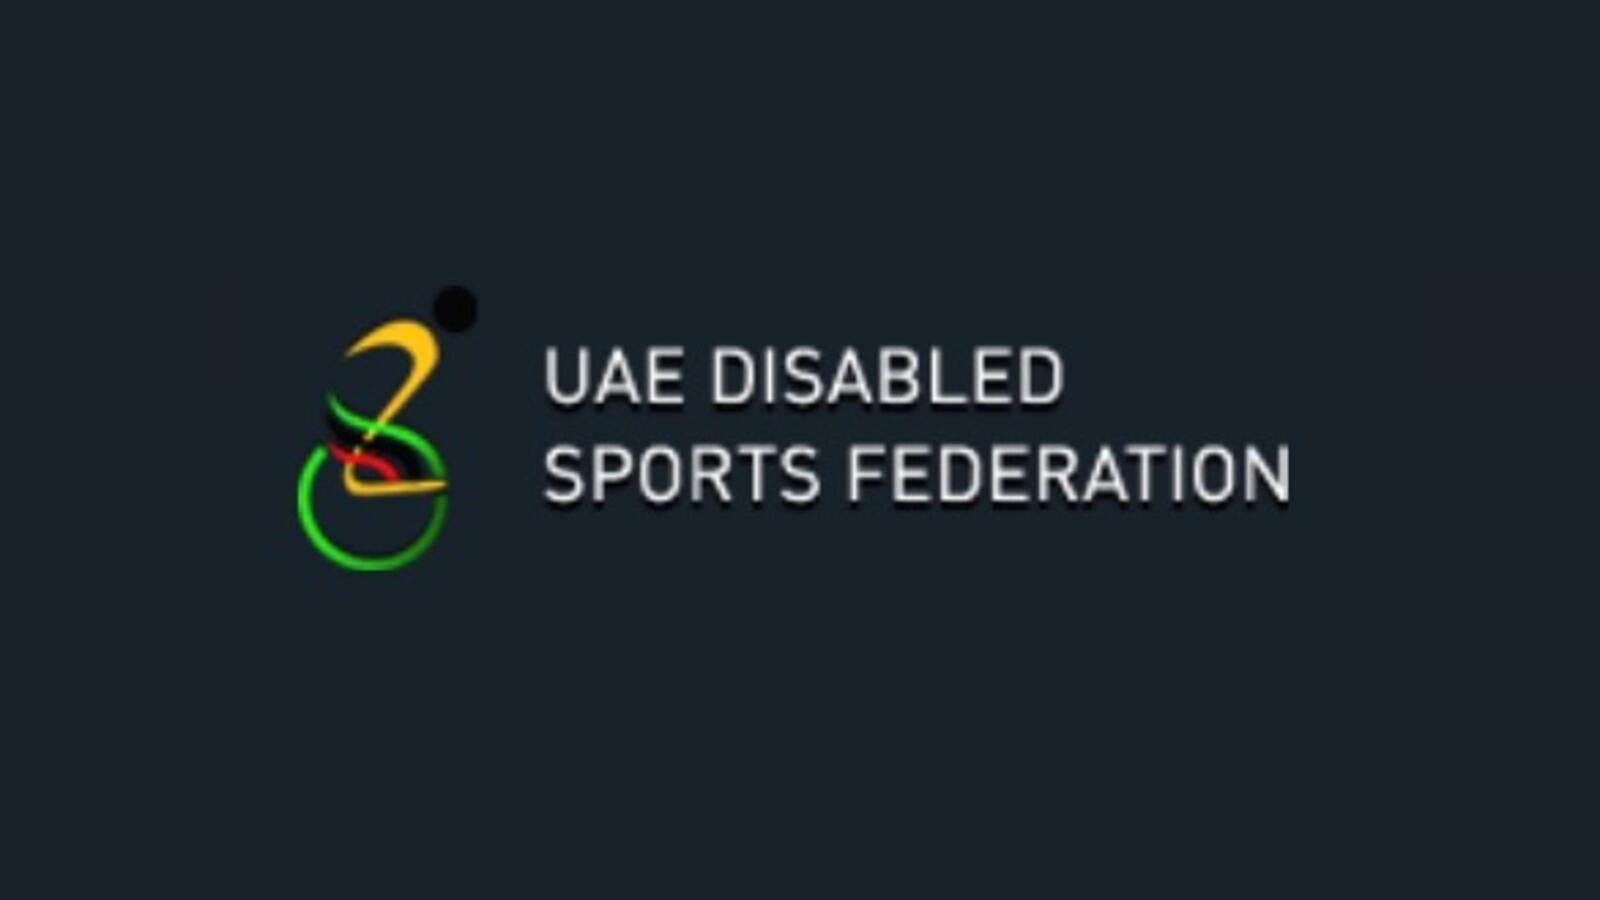 UAE Disabled Sports Federation logo